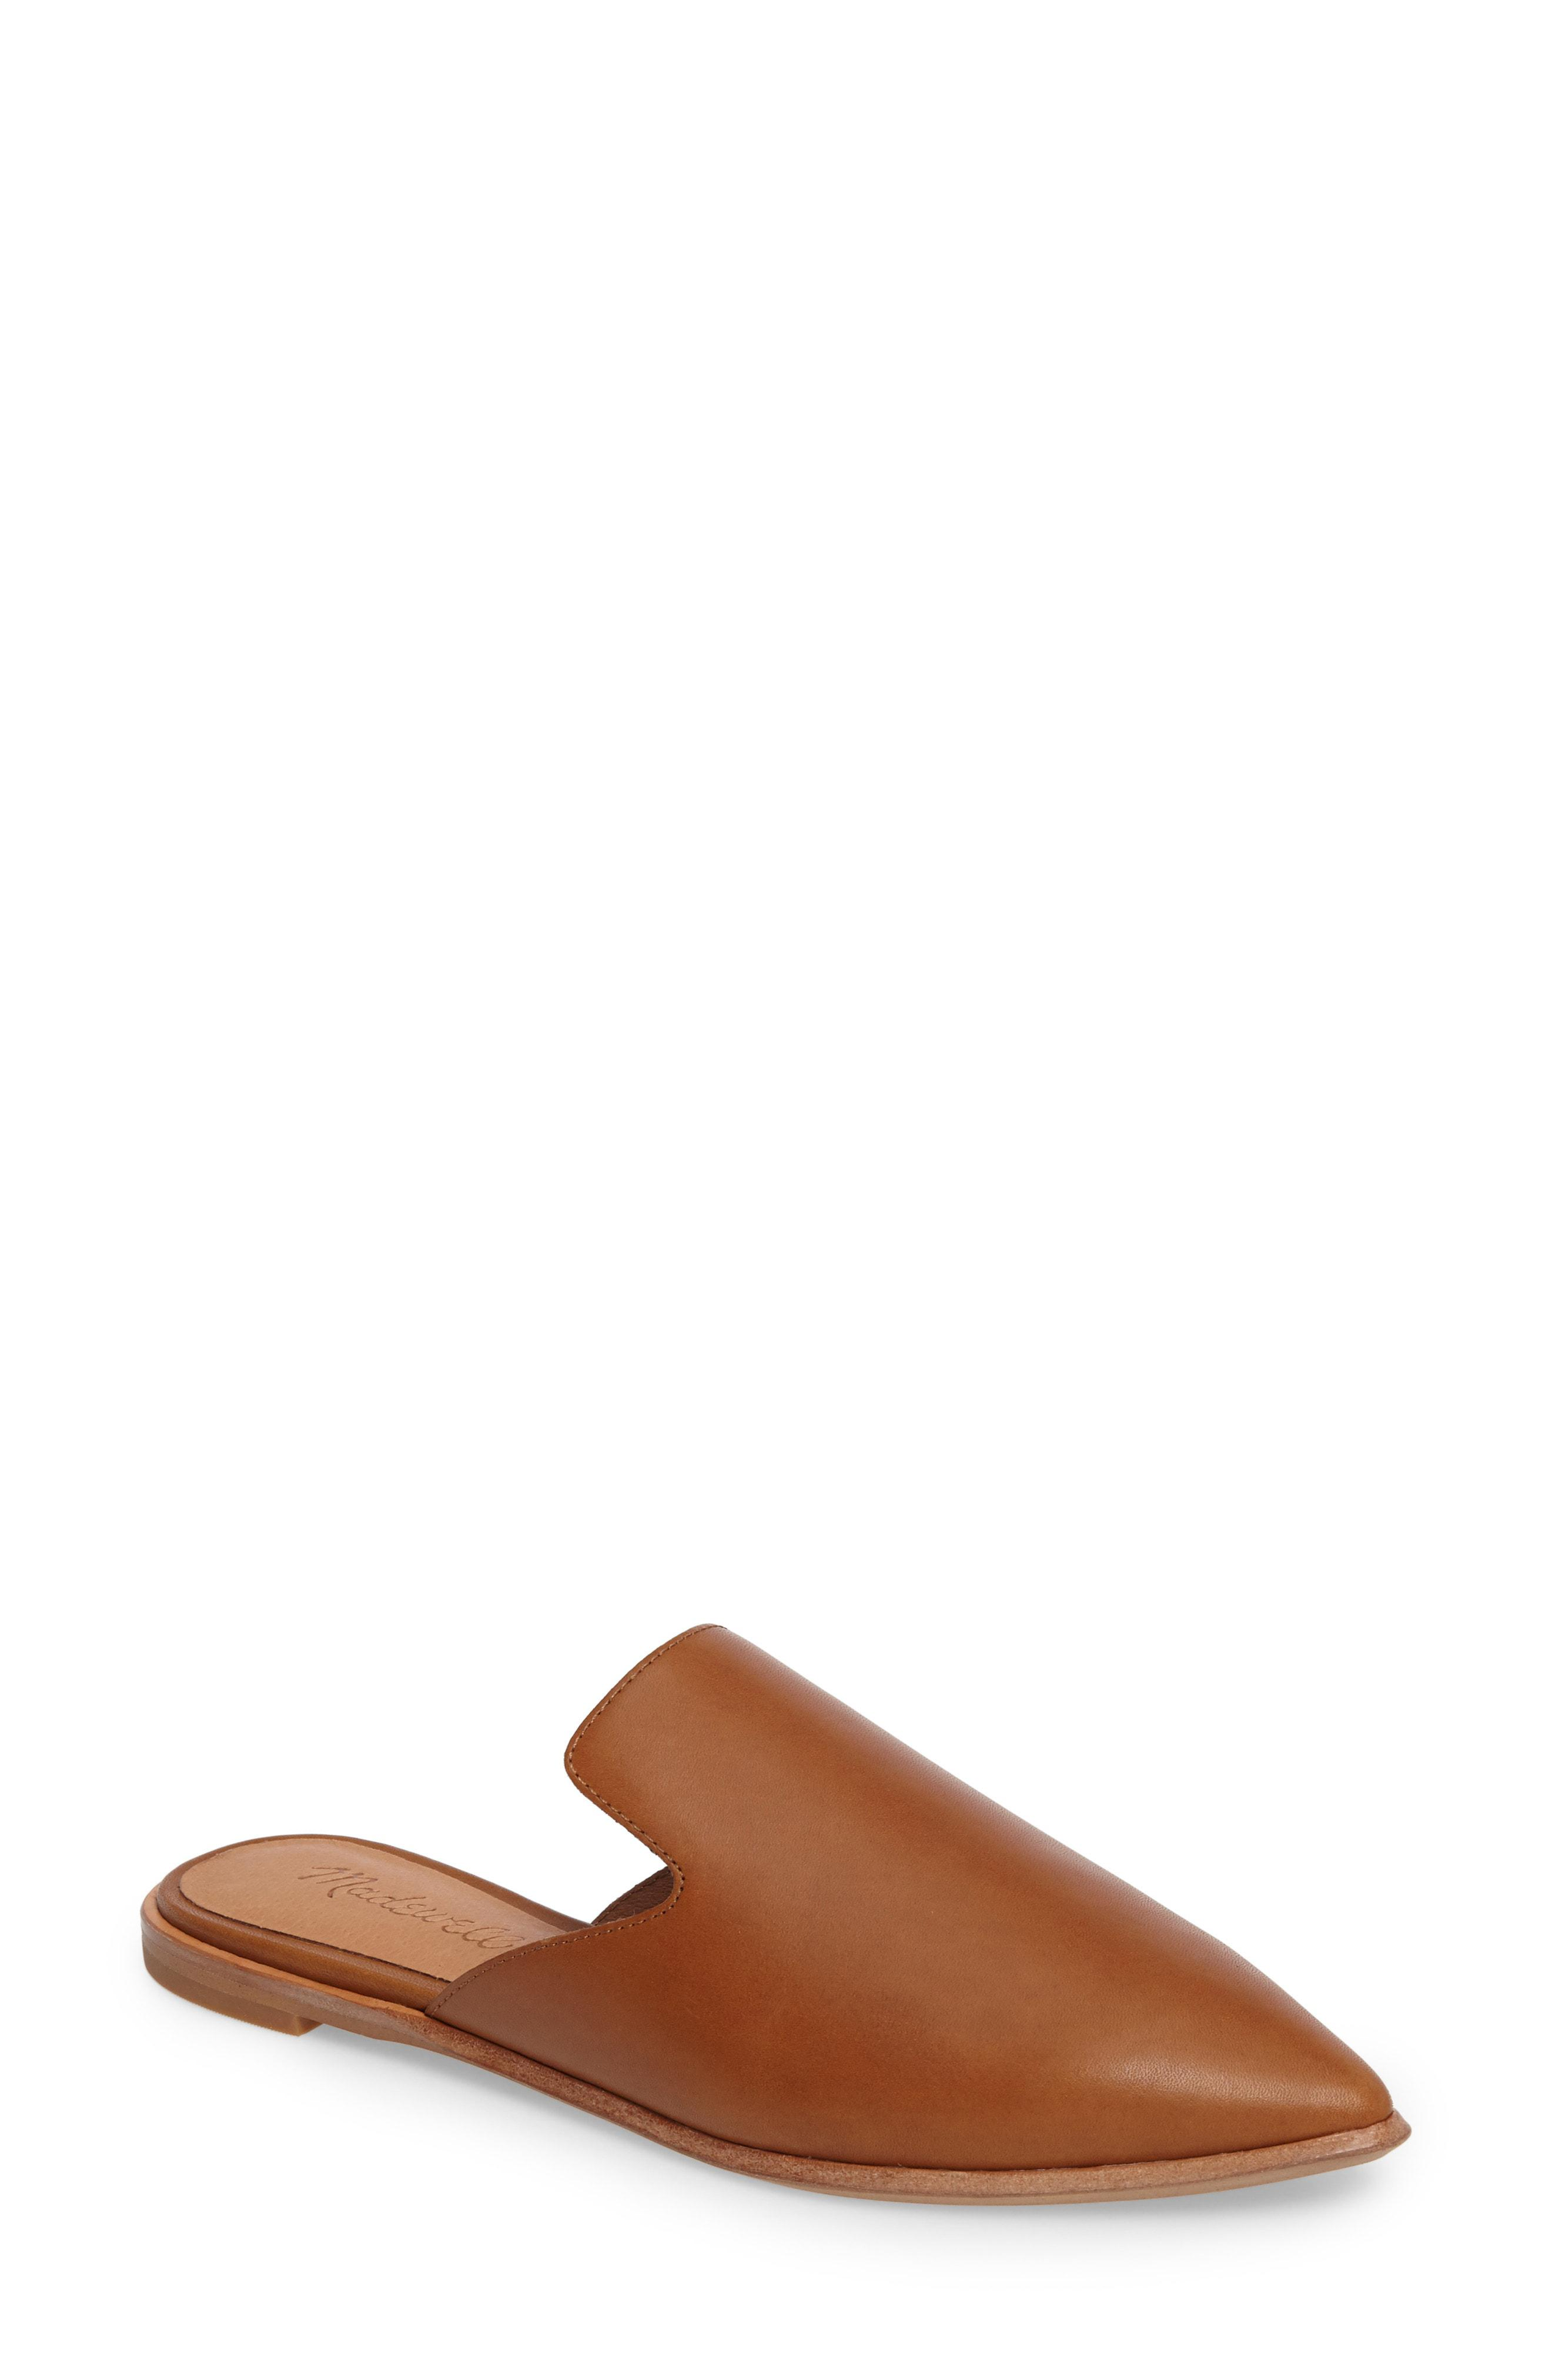 c3fc17f3197 Lyst - Madewell The Gemma Mule in Brown